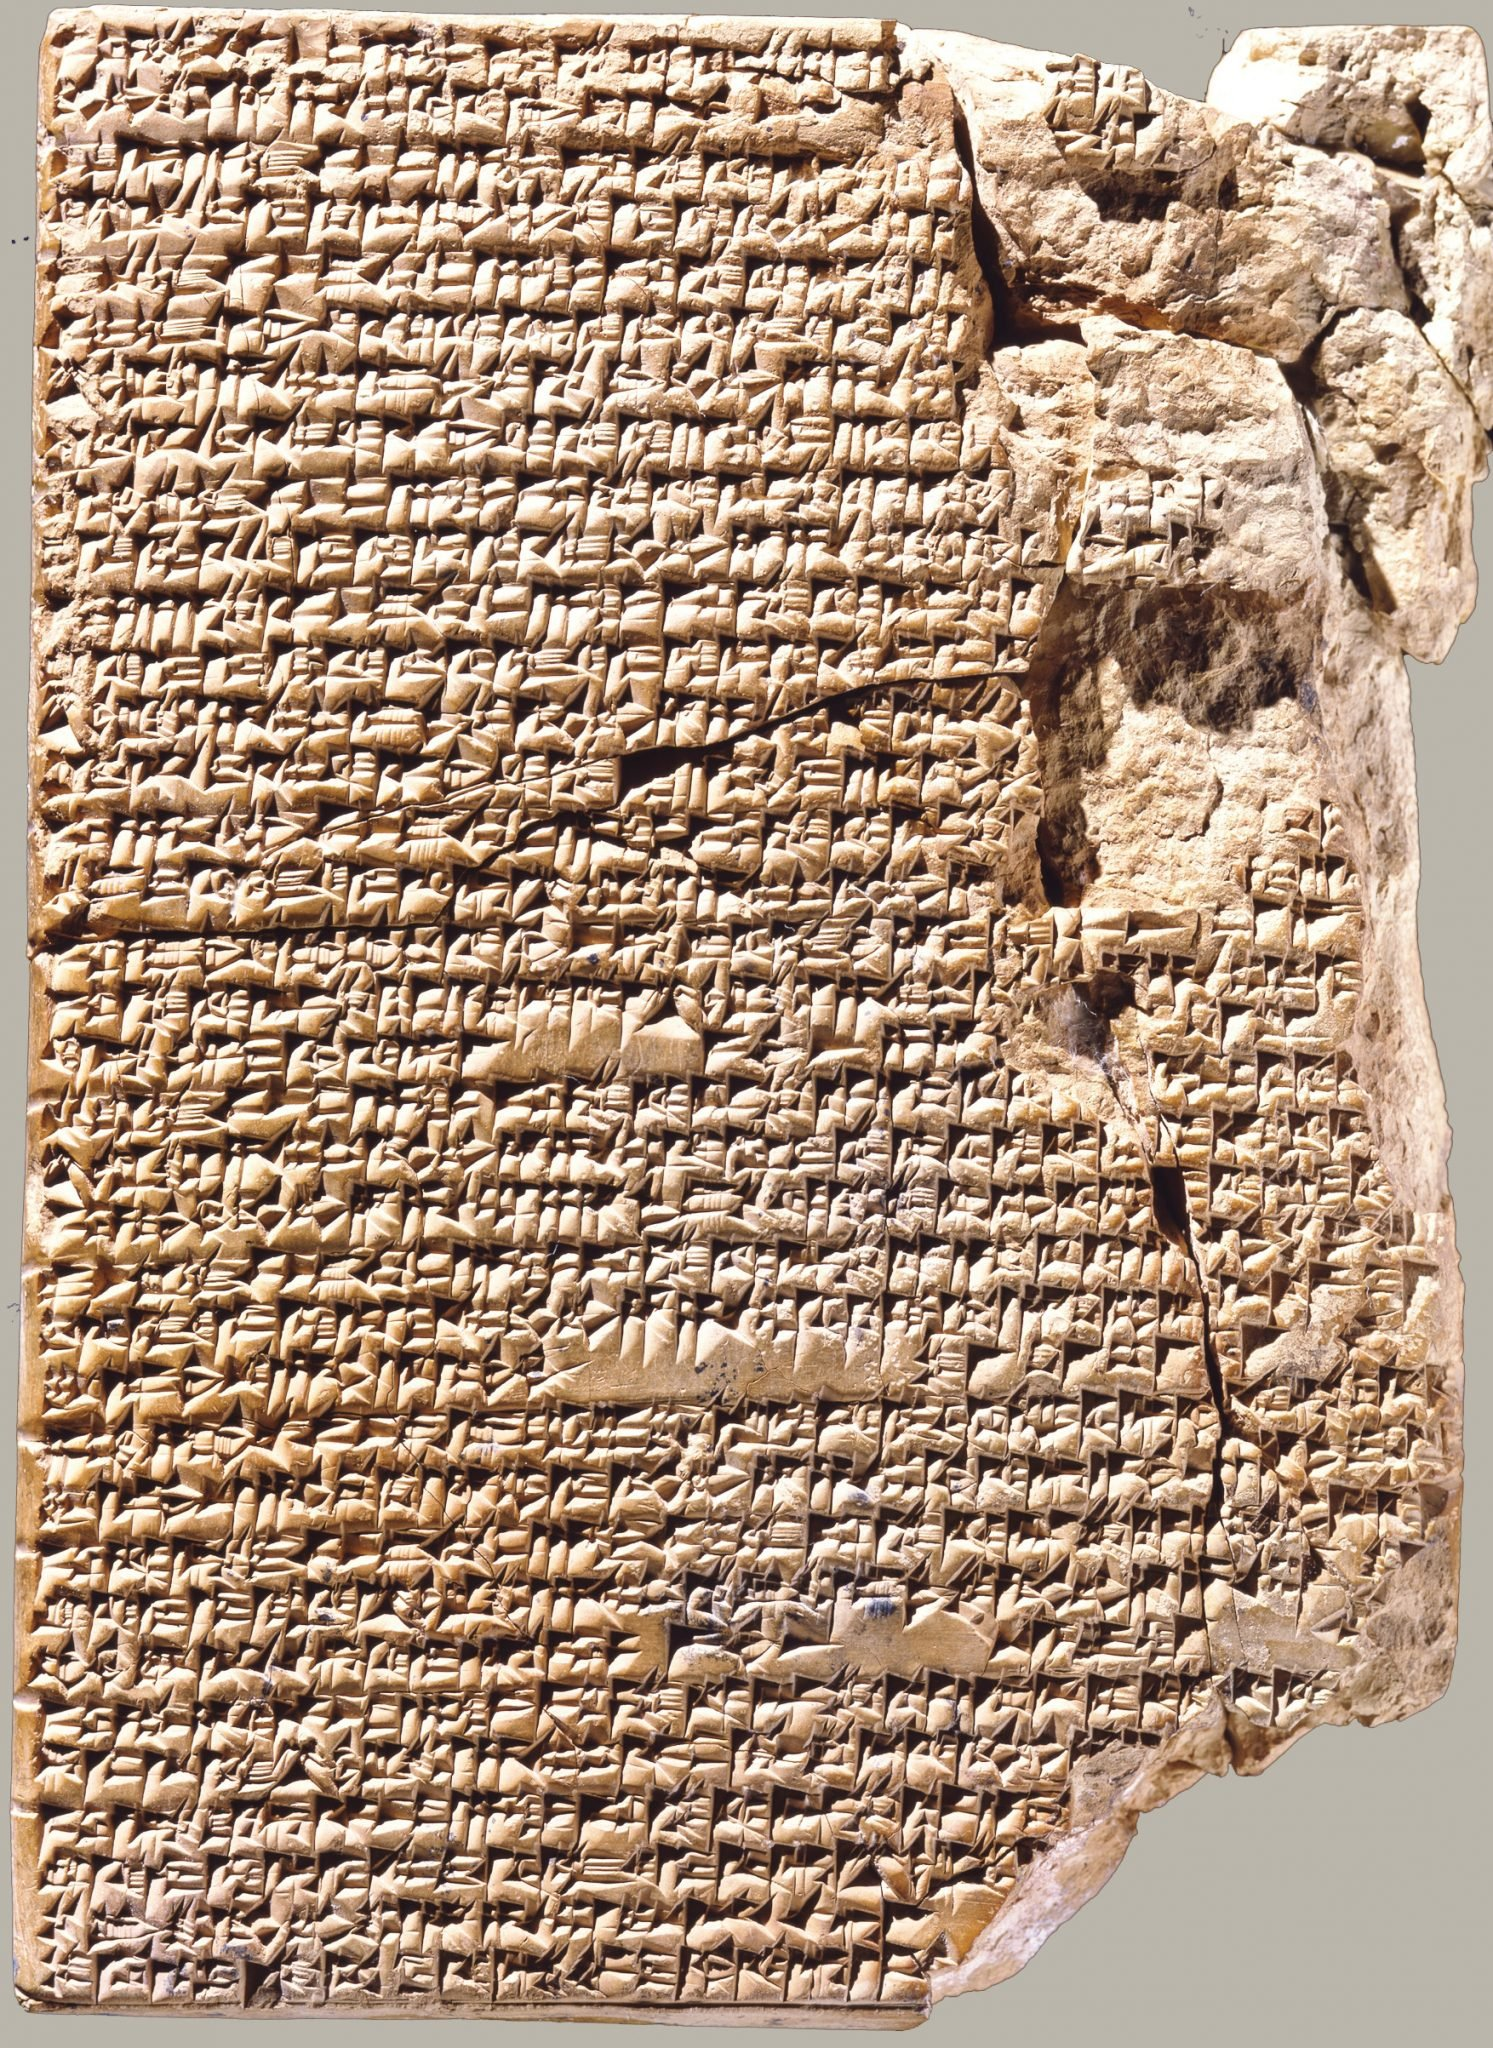 Babylonianstewrecipes.jpg (1493×2048)